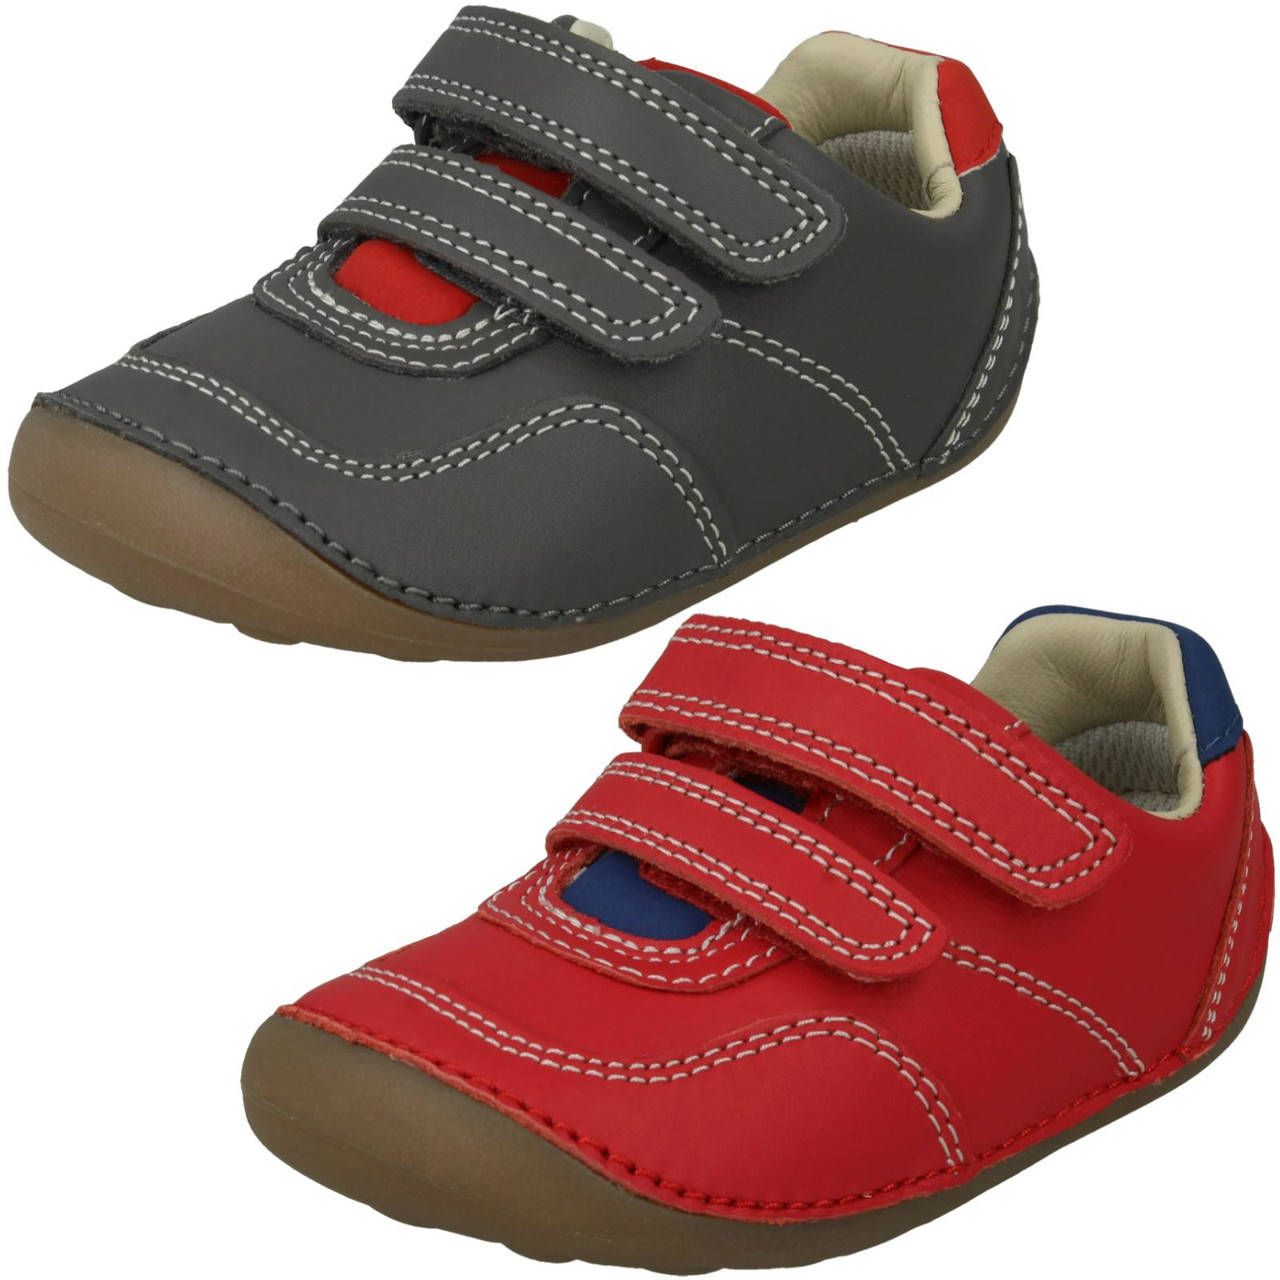 BOYS CLARKS RU ROCKS HOOK /& LOOP INFANT LEATHER CASUAL FIRST CRUISER SHOES SIZE